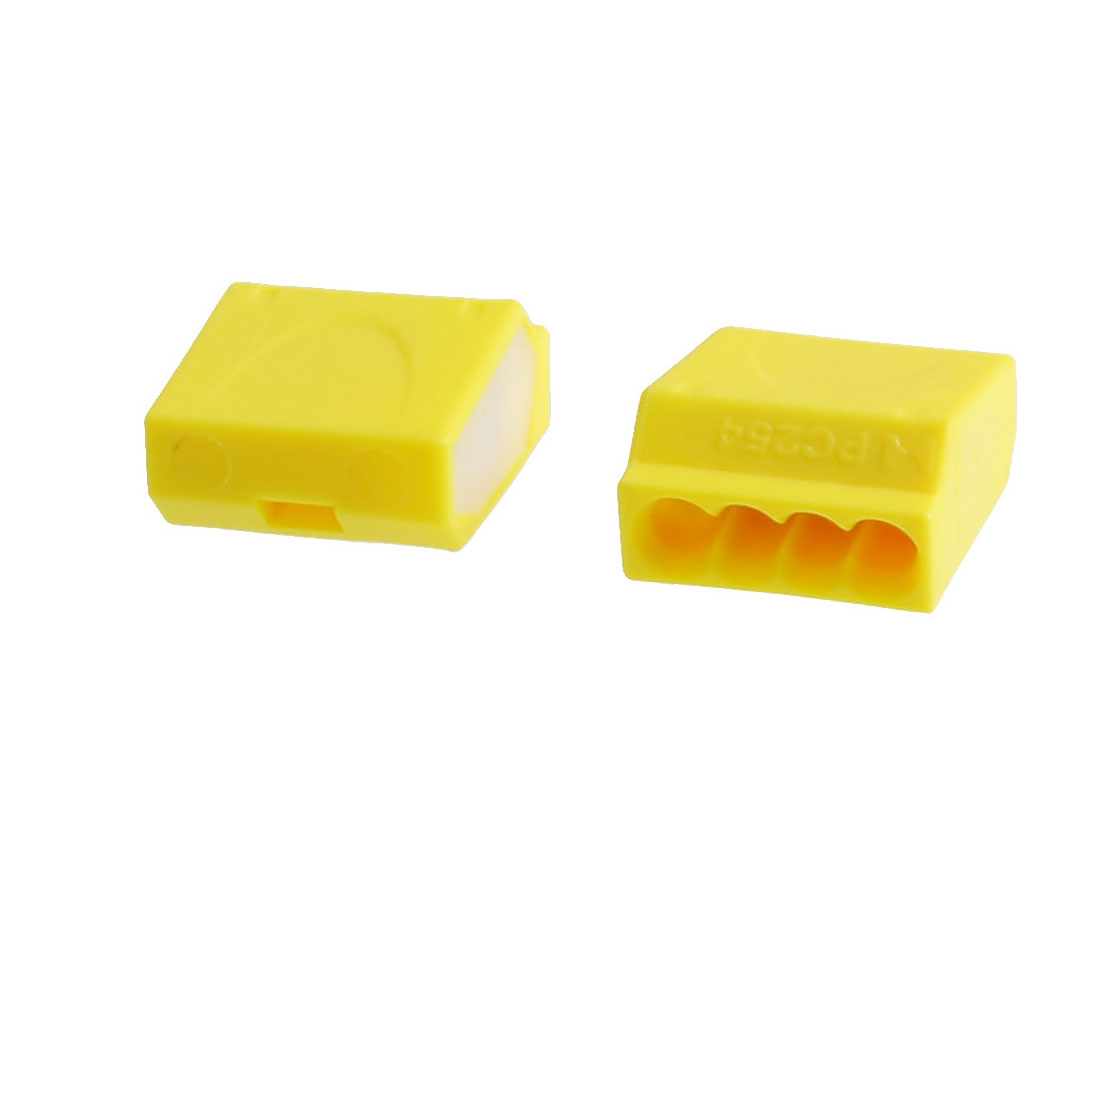 Yellow Thermoplastic AC 24A 450V 4 Contacts 12-24AWG Wire PC254 Connector 2 Pieces